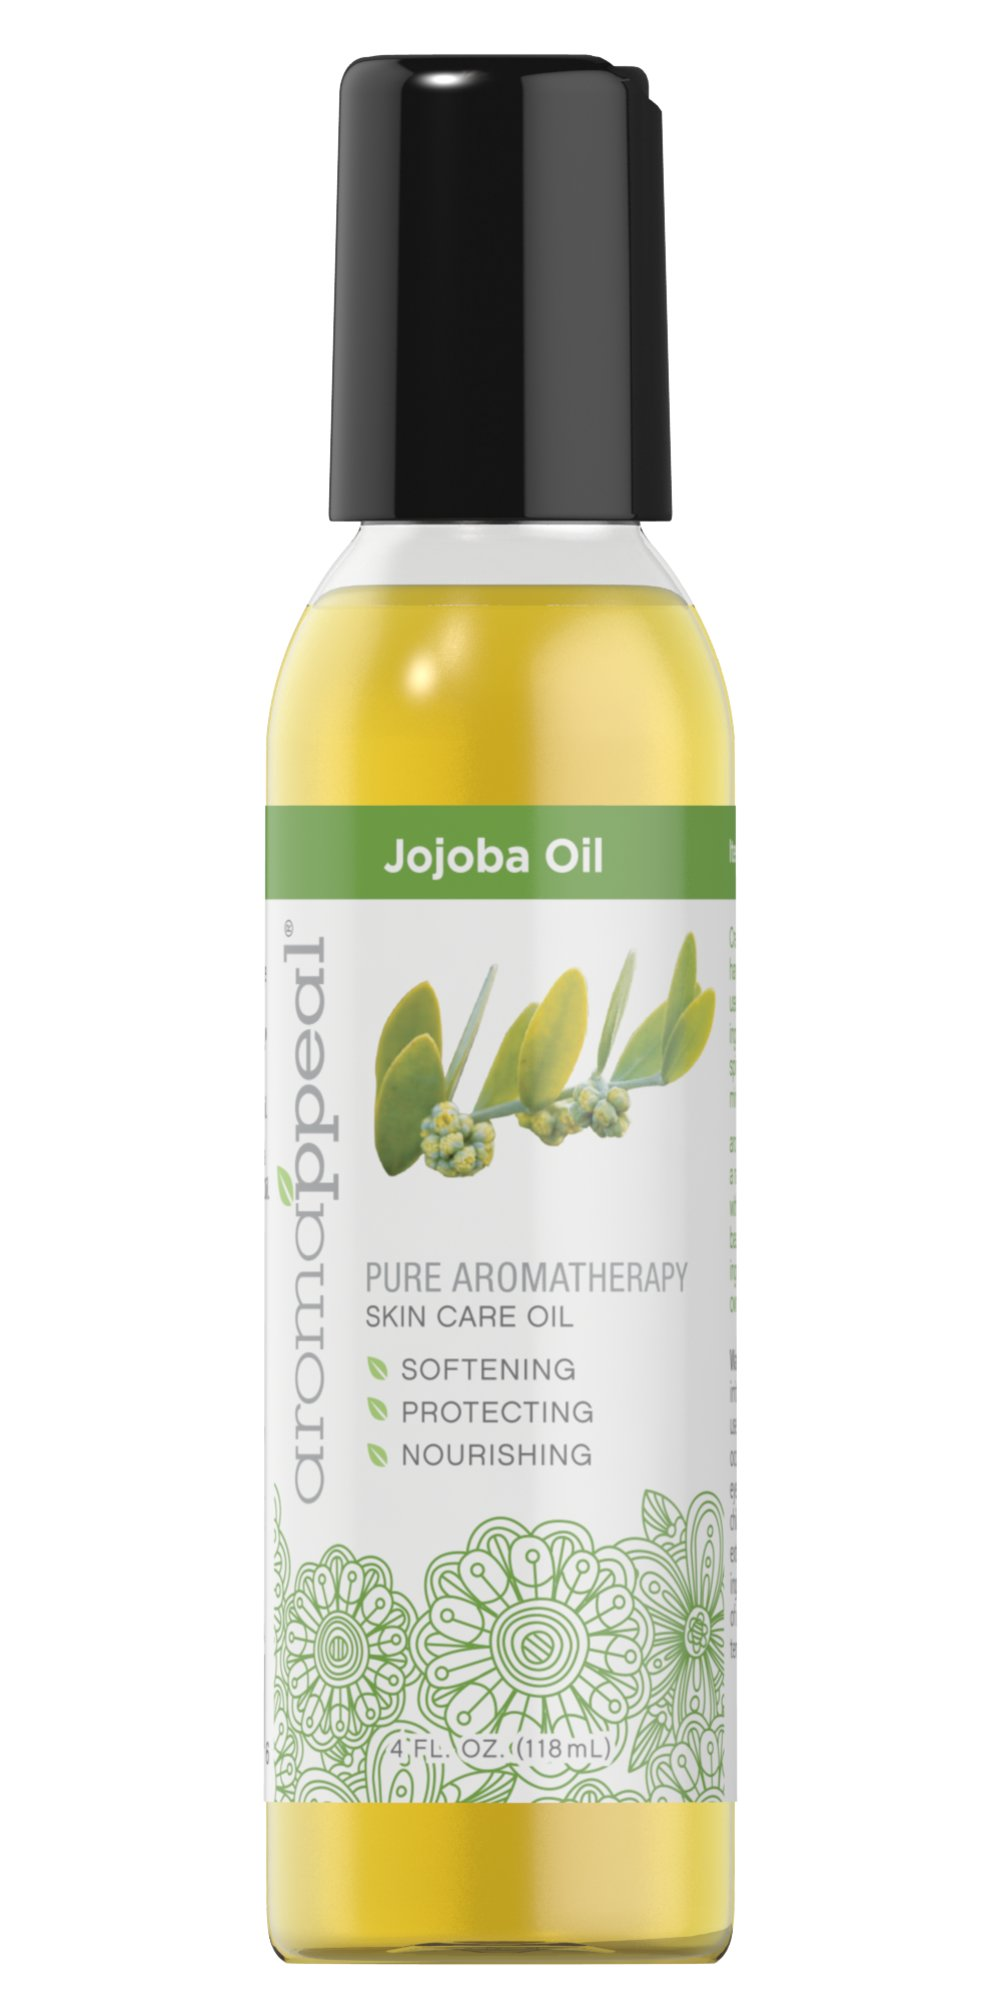 Jojoba Oil <p>Created to bring you harmony, Aromappeal™ uses the most balanced ingredients to lift your spirits and soothe your mind.</p><p>Aromappeal™ Jojoba Oil is a natural vegetable oil with a neutral aroma. This base makes an ideal ingredient to create your own aroma recipe.</p> 4 oz Oil  $15.29